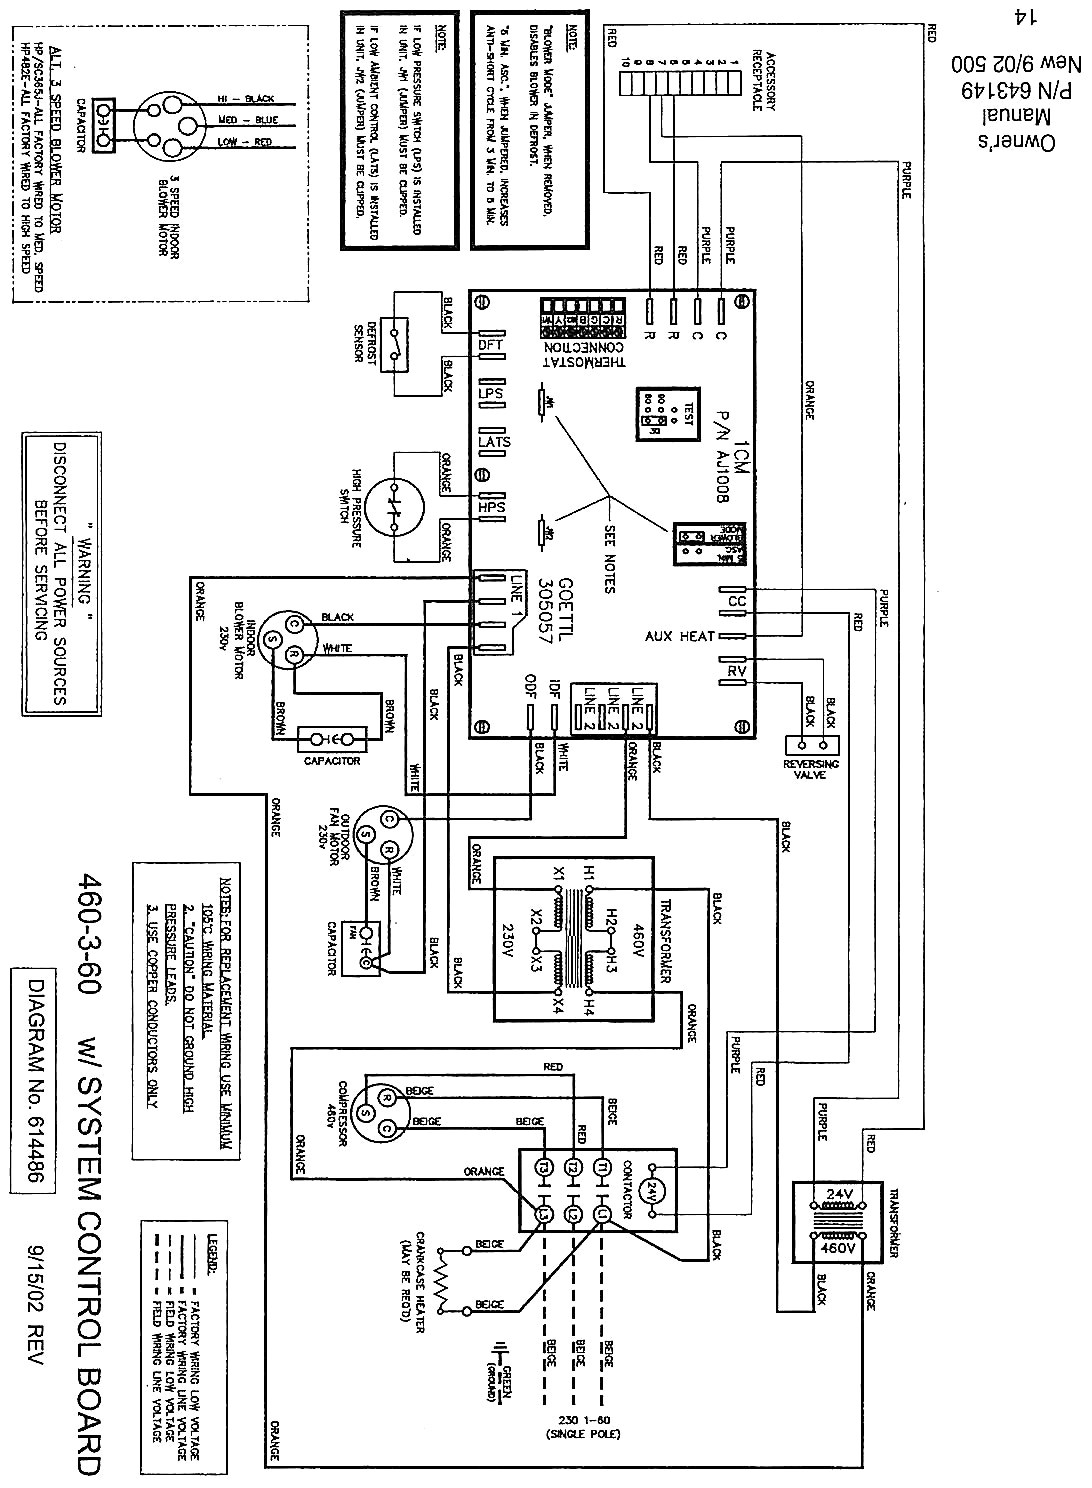 Goodman Package Unit Wiring Diagram New Wiring Diagram Image - Payne package unit wiring diagram